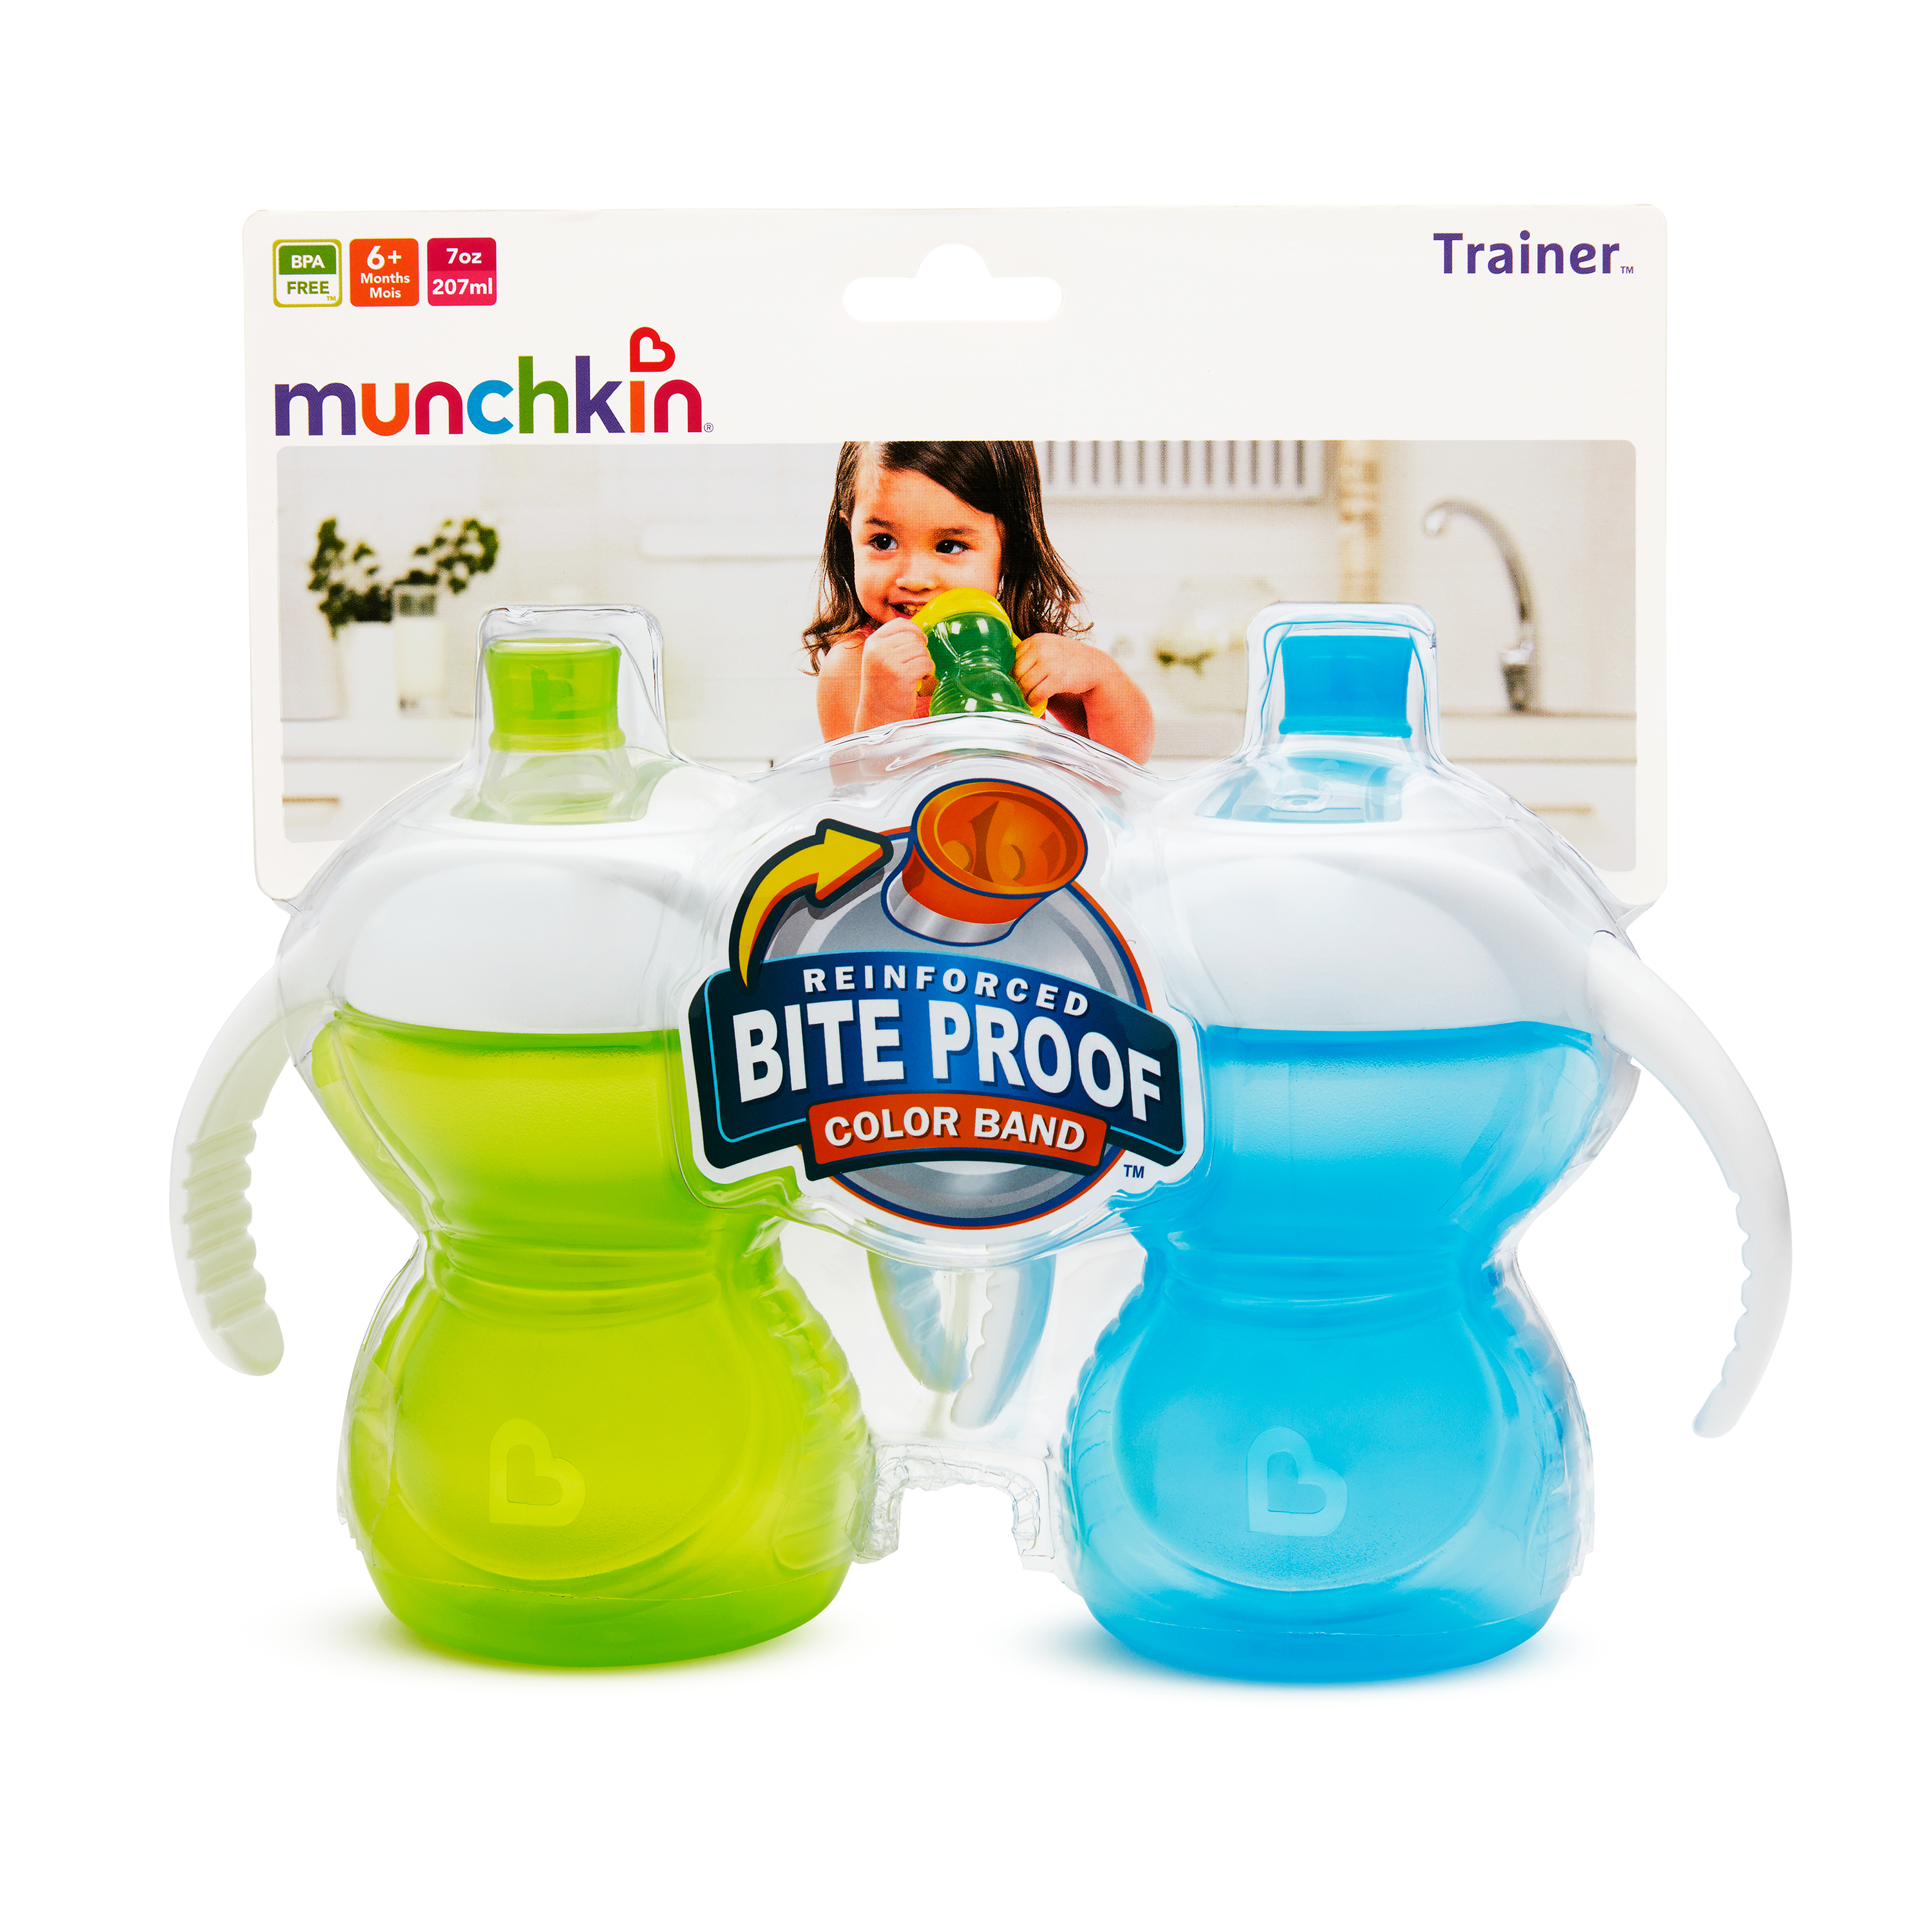 Munchkin Reinforced Bite Proof Color Band Trainer Cups 9+ Months - 2 CT